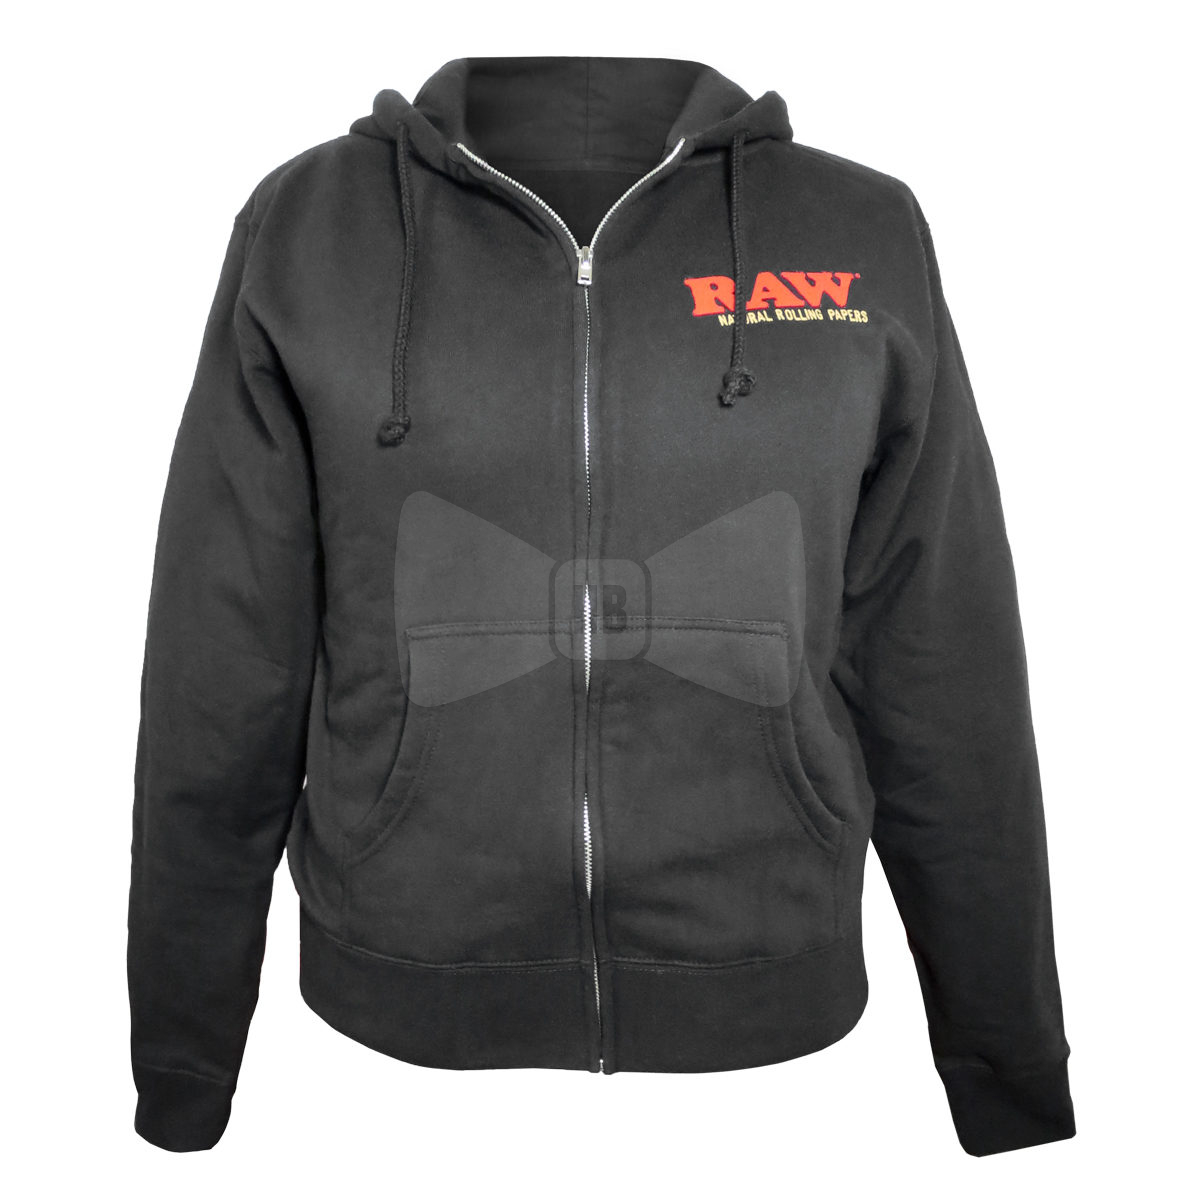 RAW Ladies Zip-Up Hoodie Medium